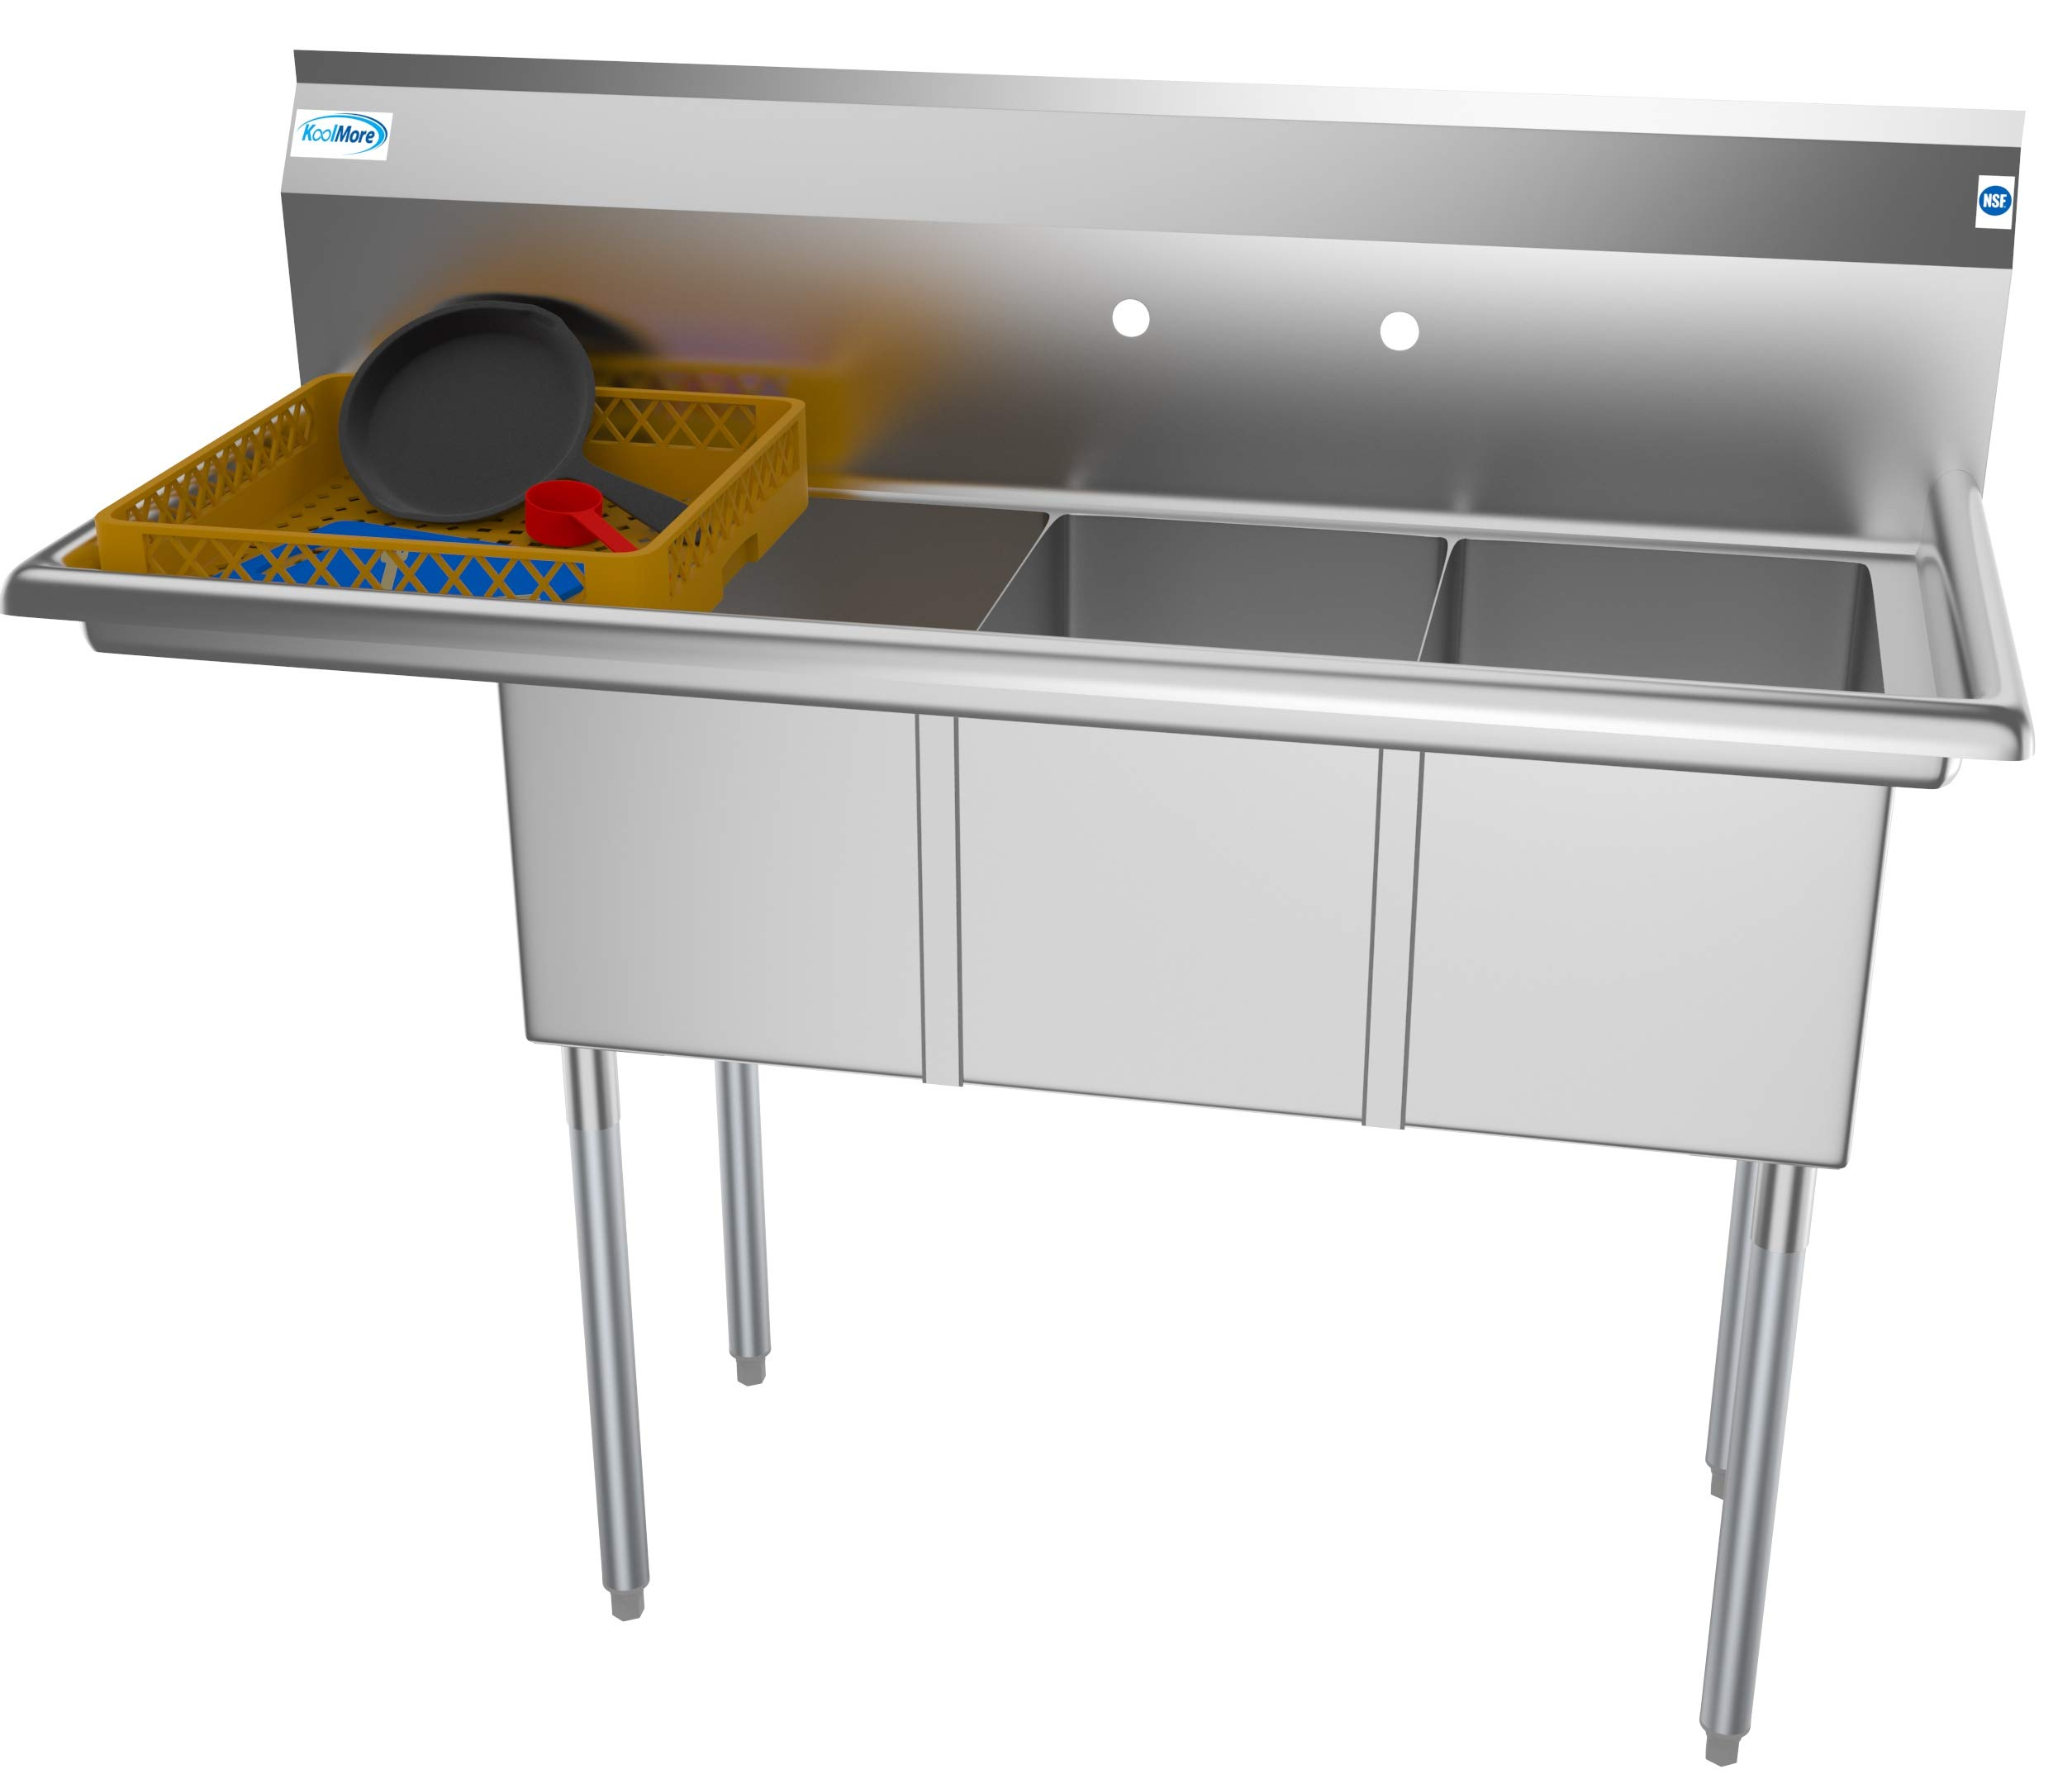 KoolMore 3 Compartment Stainless Steel NSF Commercial Kitchen Sink with Drainboard - Bowl Size 12'' x 16'' x 10'',Silver